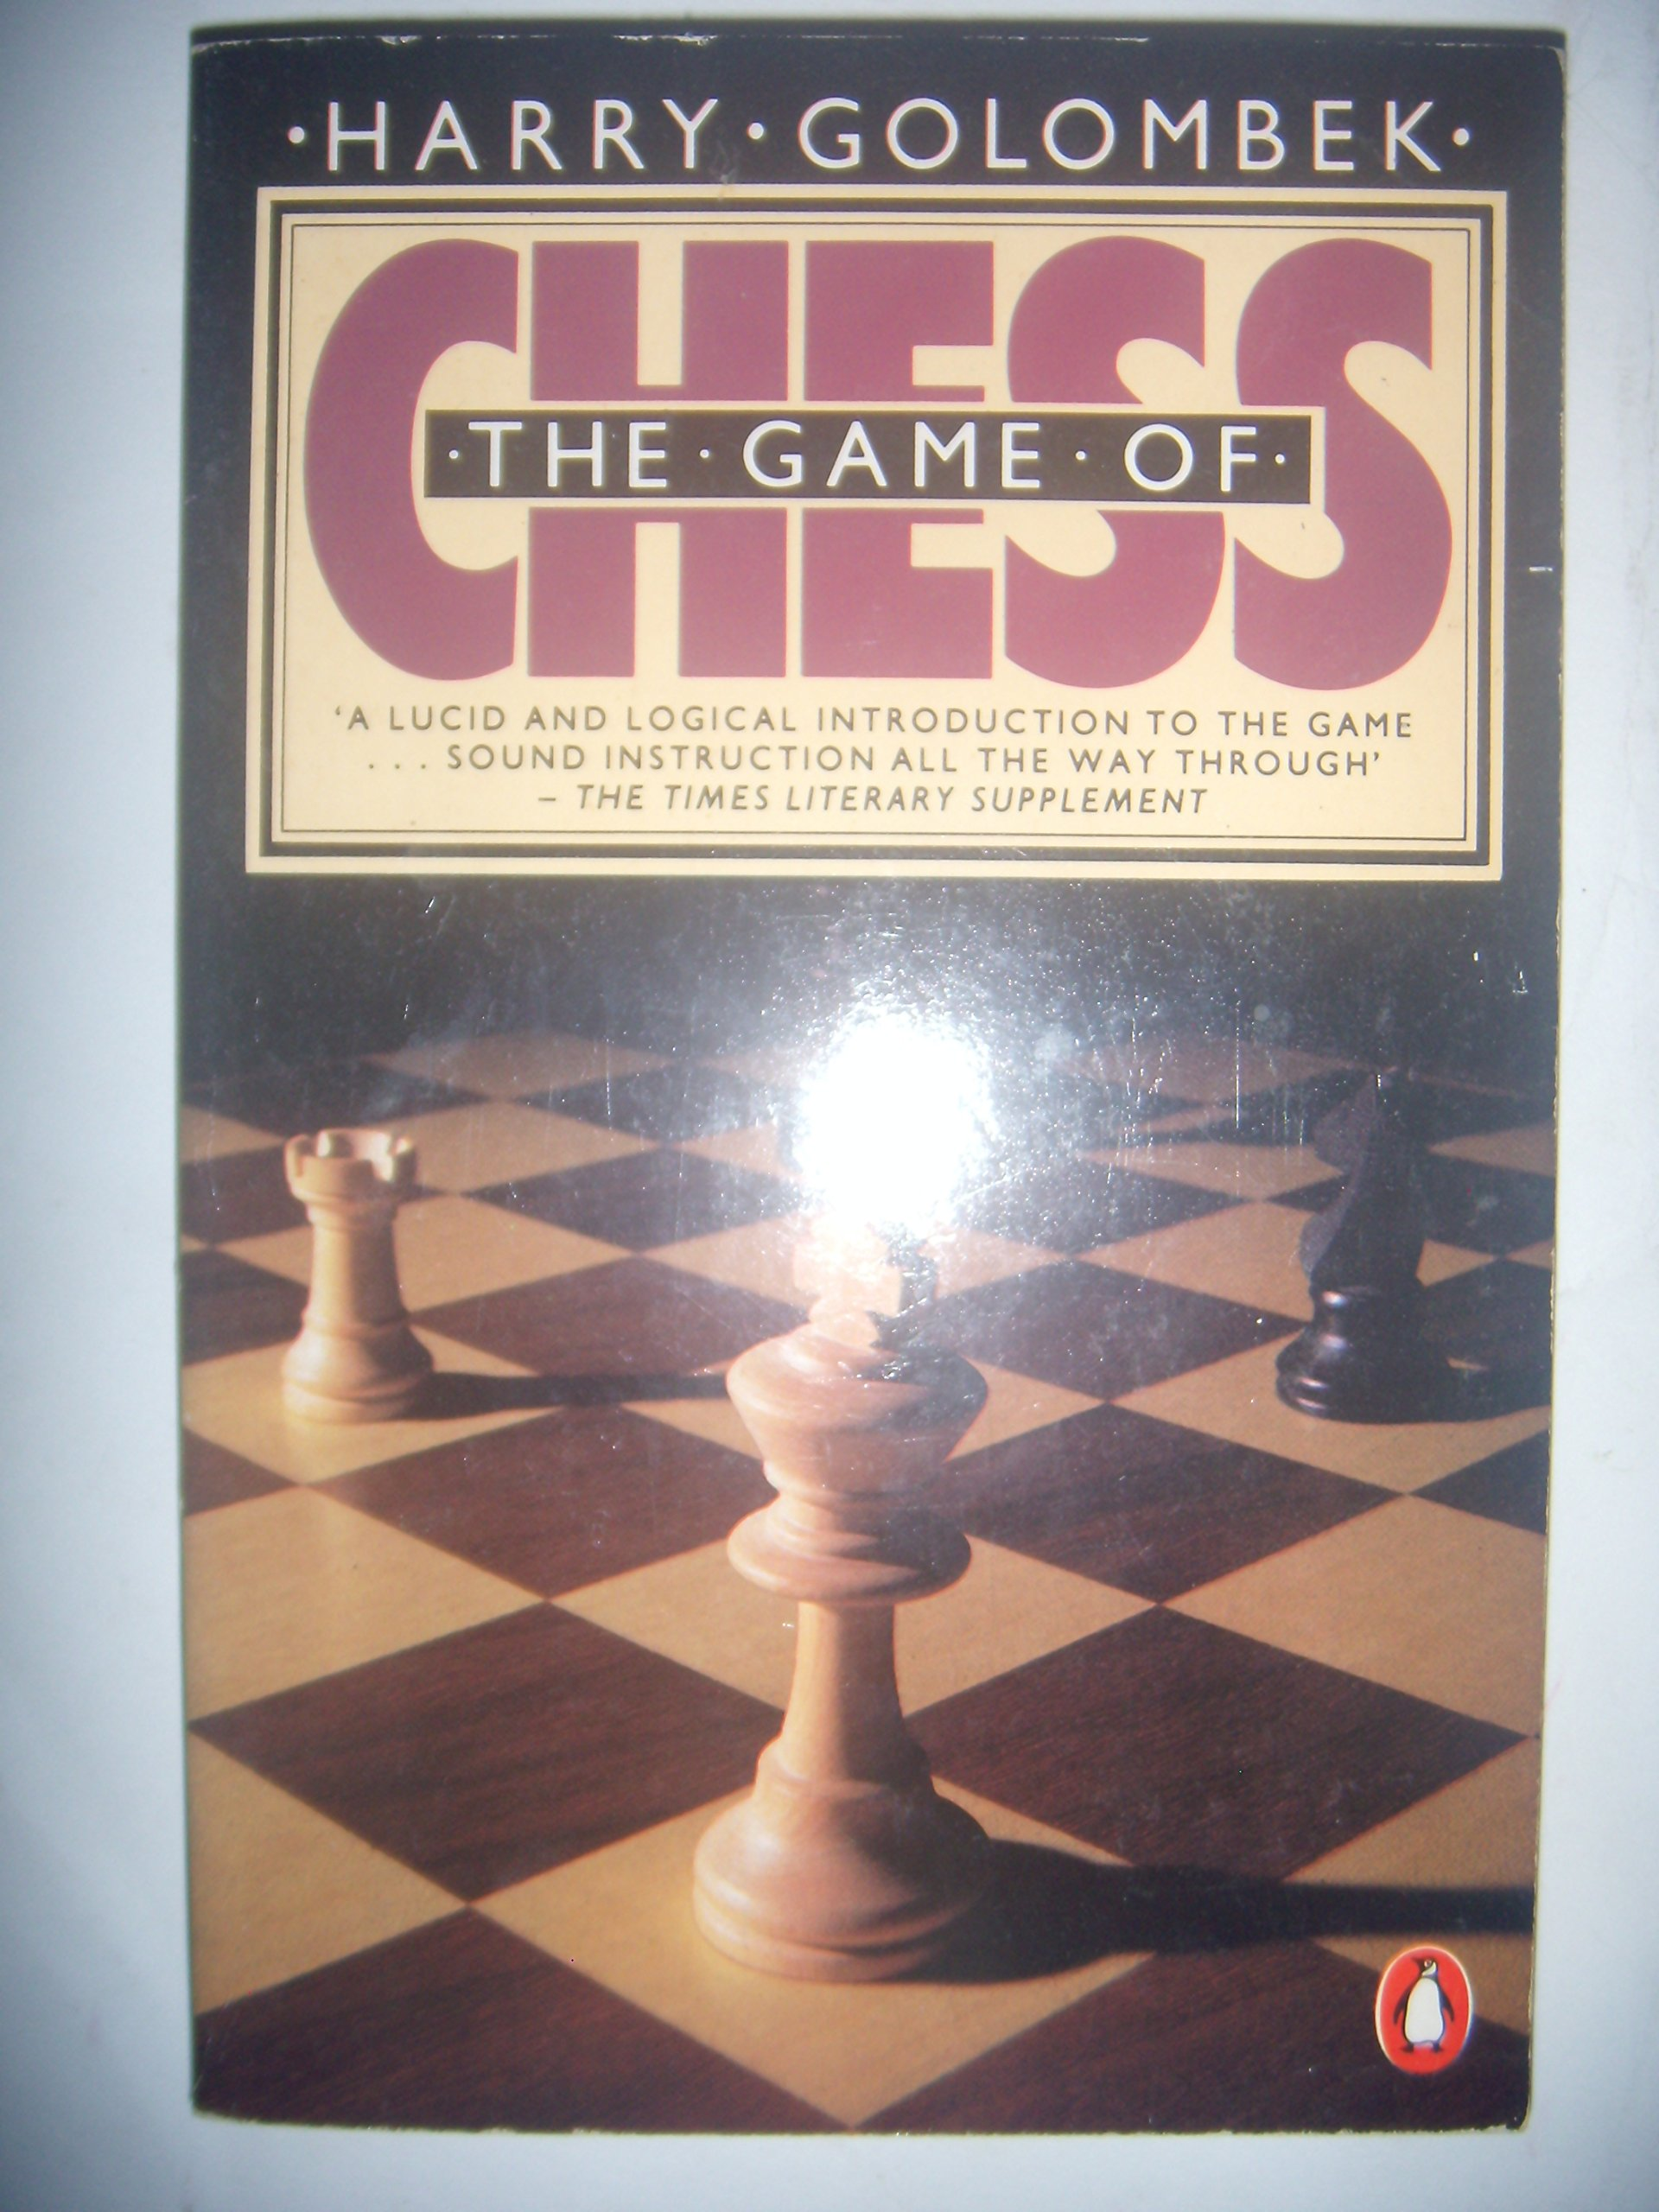 The Game of Chess by Harry Golombek